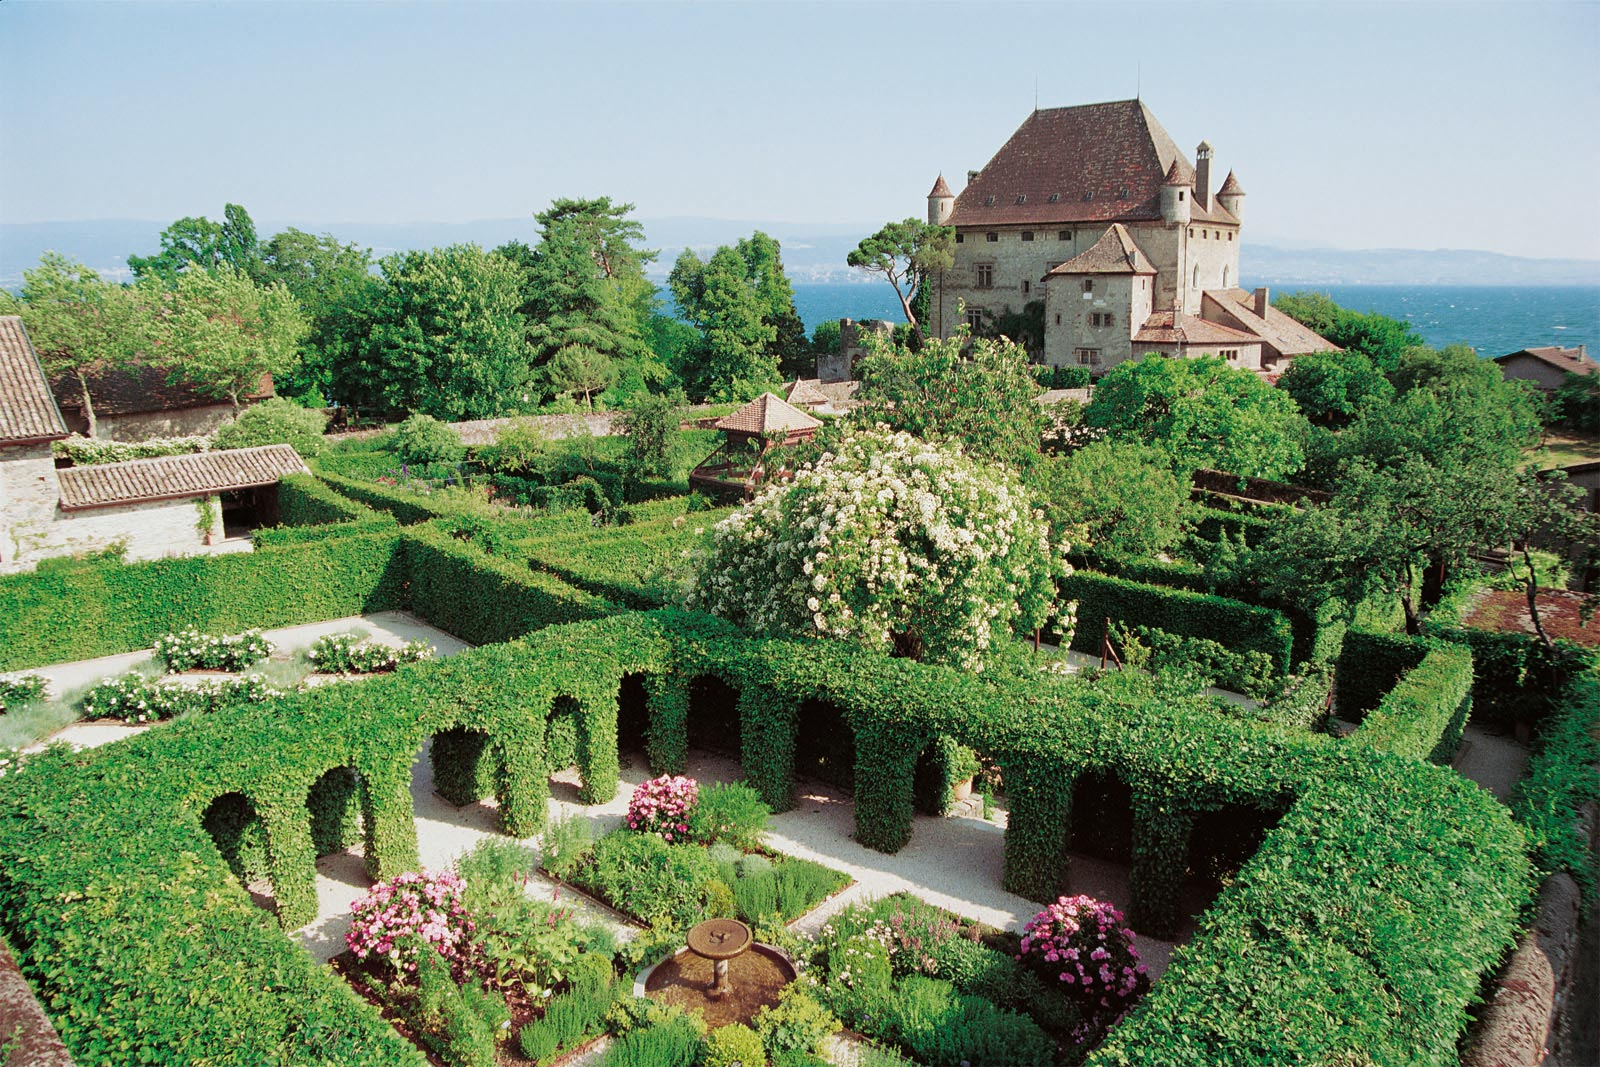 The Labyrinth of Five Senses in Yvoire: the cloister.